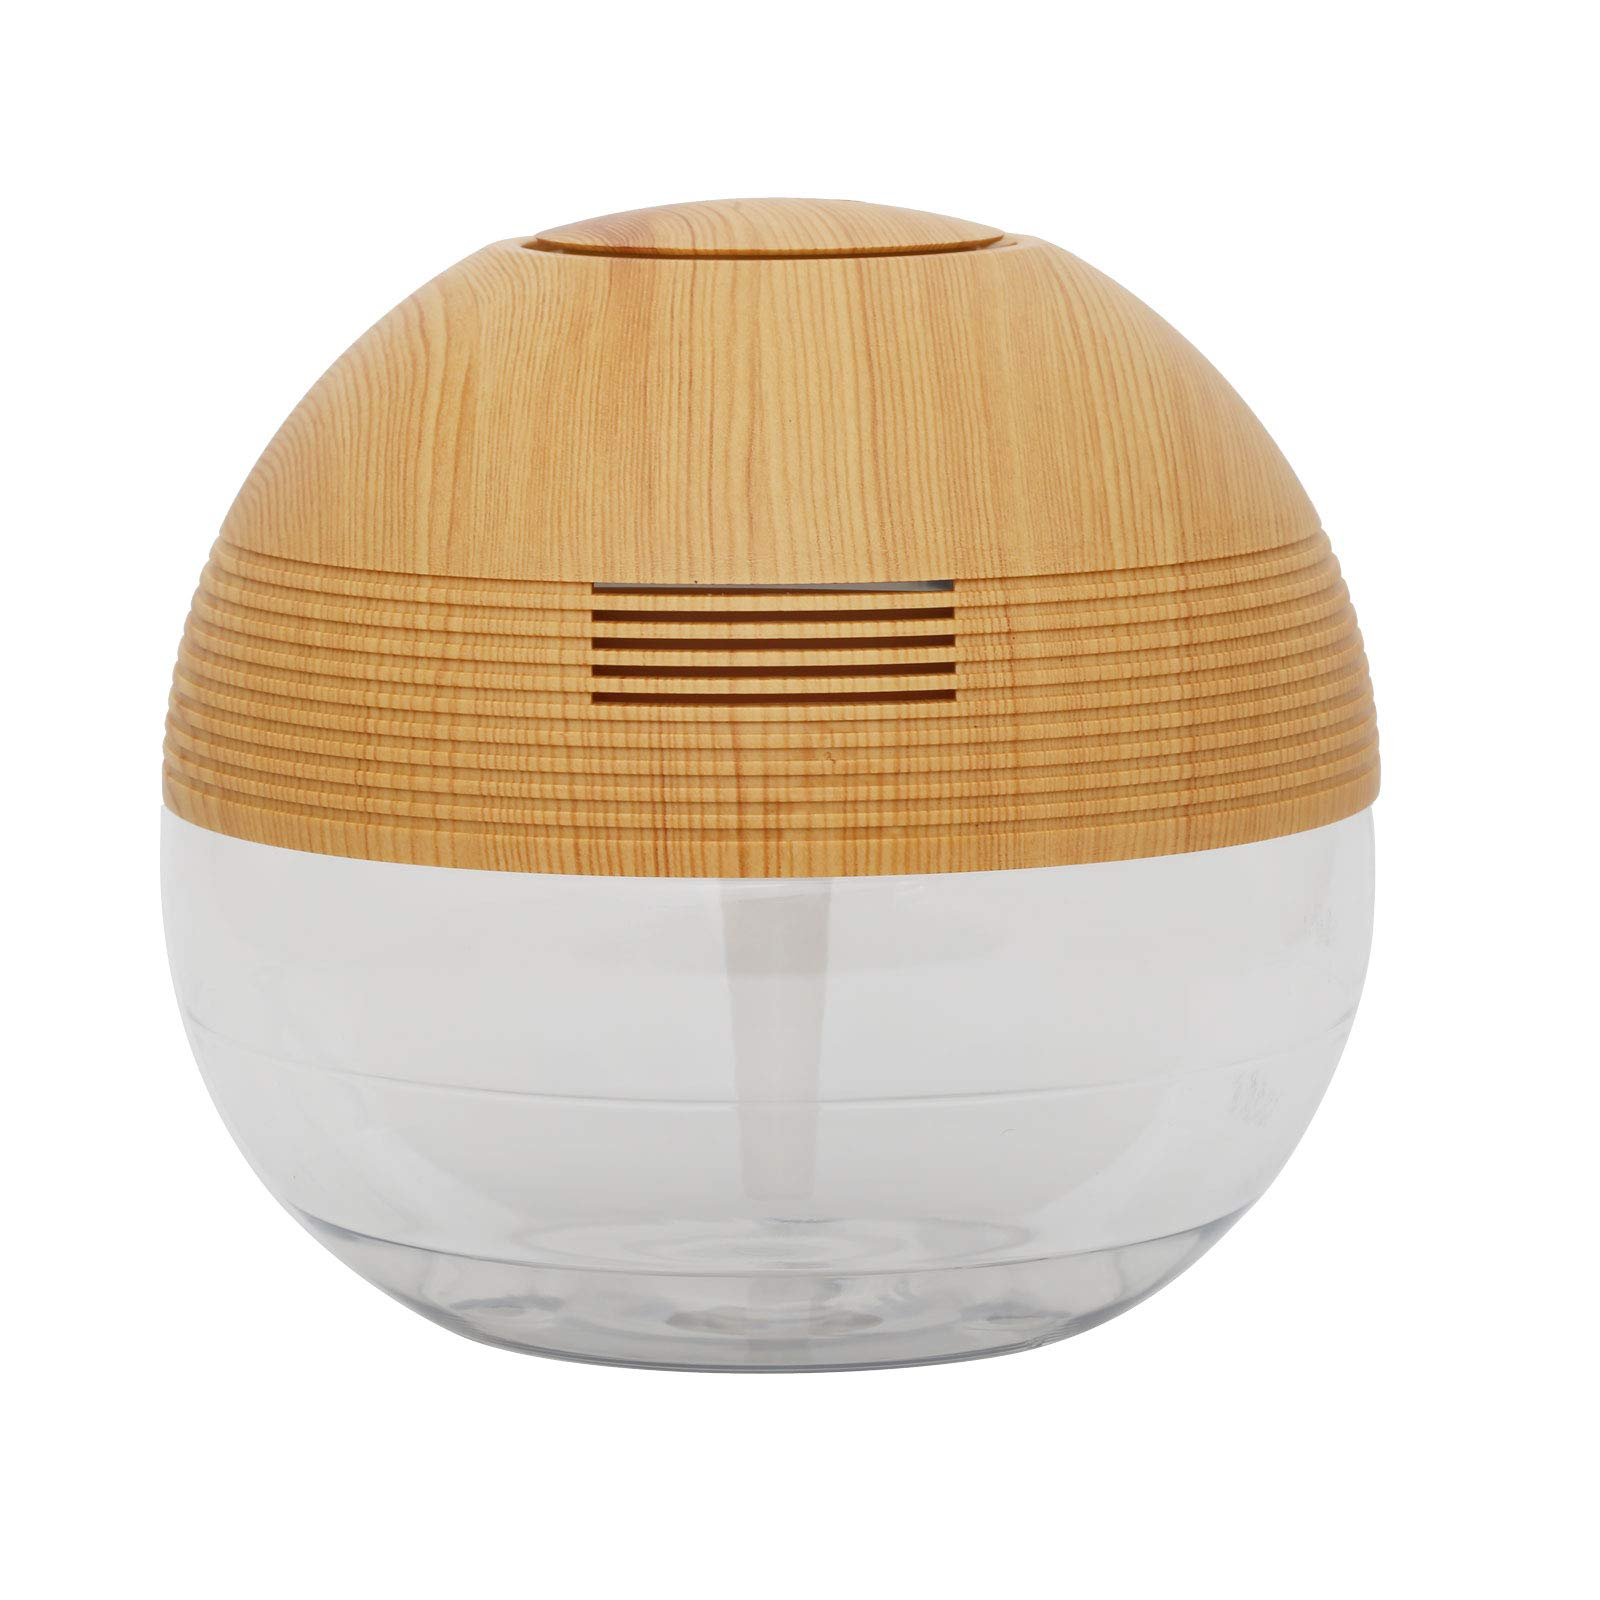 UROMA Water Based Air Revitalizer Purifier Odor Remover Humidifier Aromatherapy Air Cleaner (Honey) by UROMA